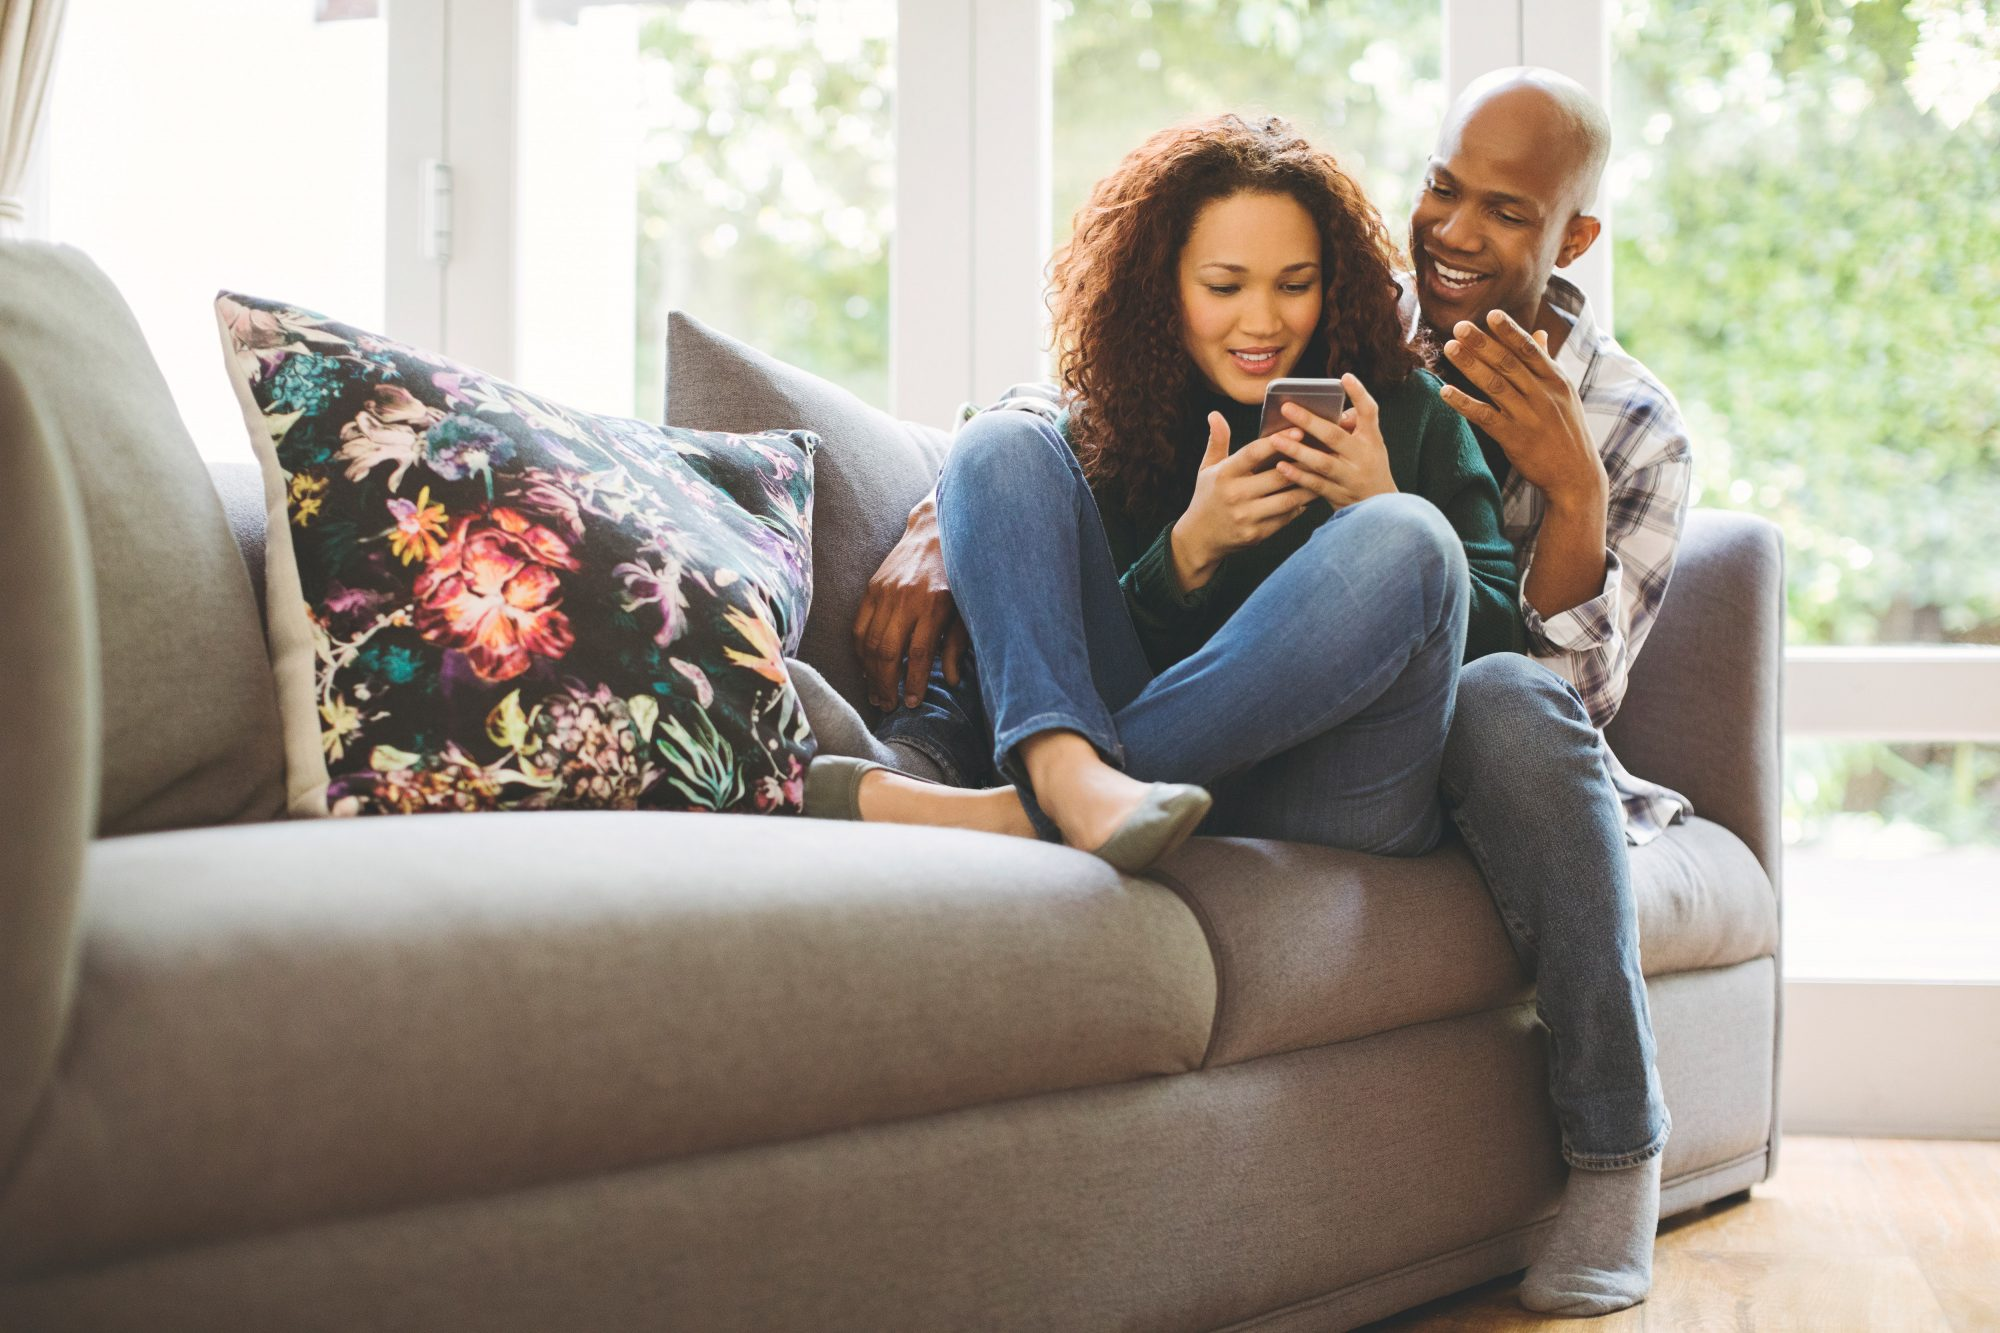 Couple Sitting on Couch Looking at Cell Phones